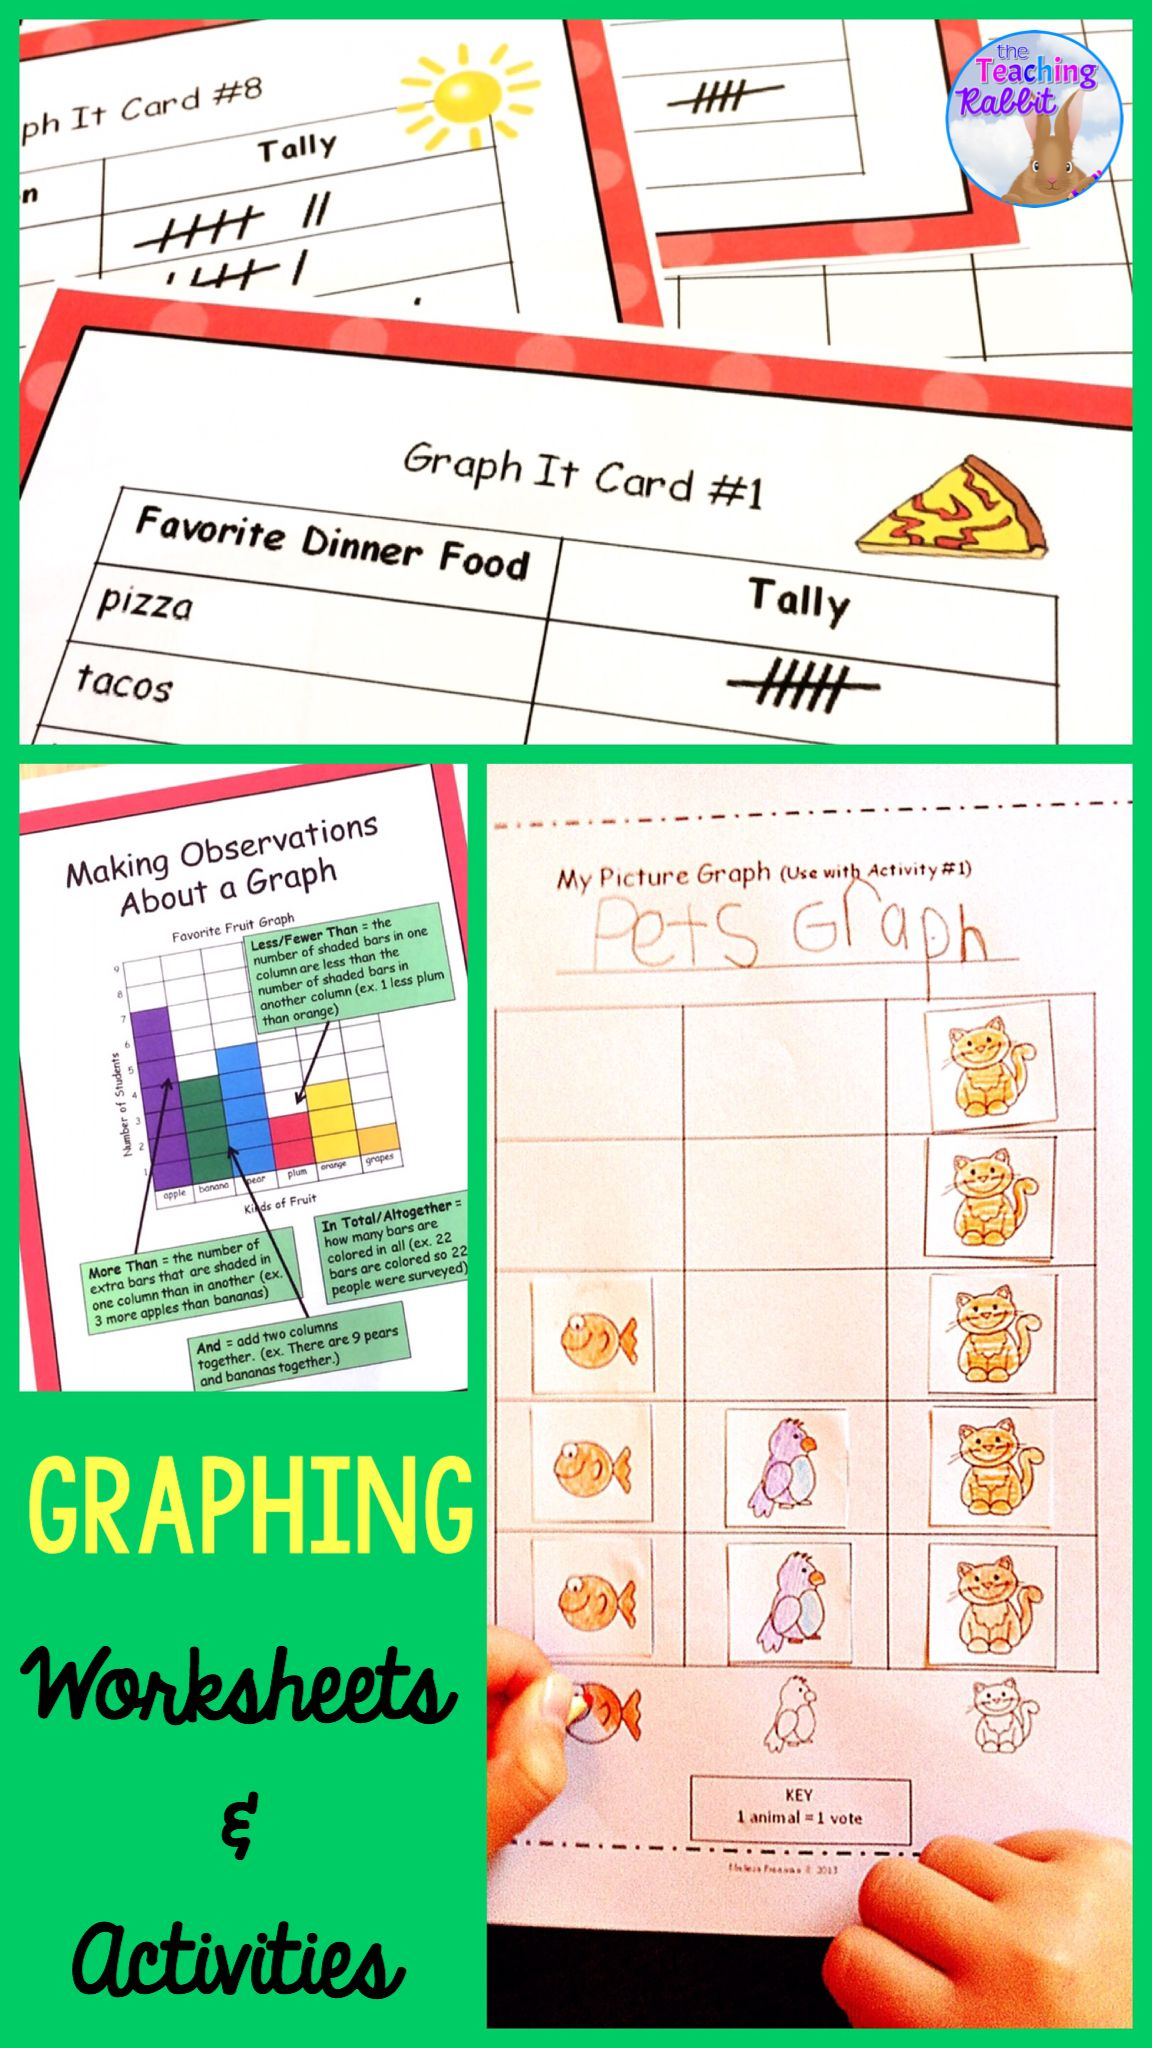 Graphing Worksheets Amp Activities 2nd Grade With Images